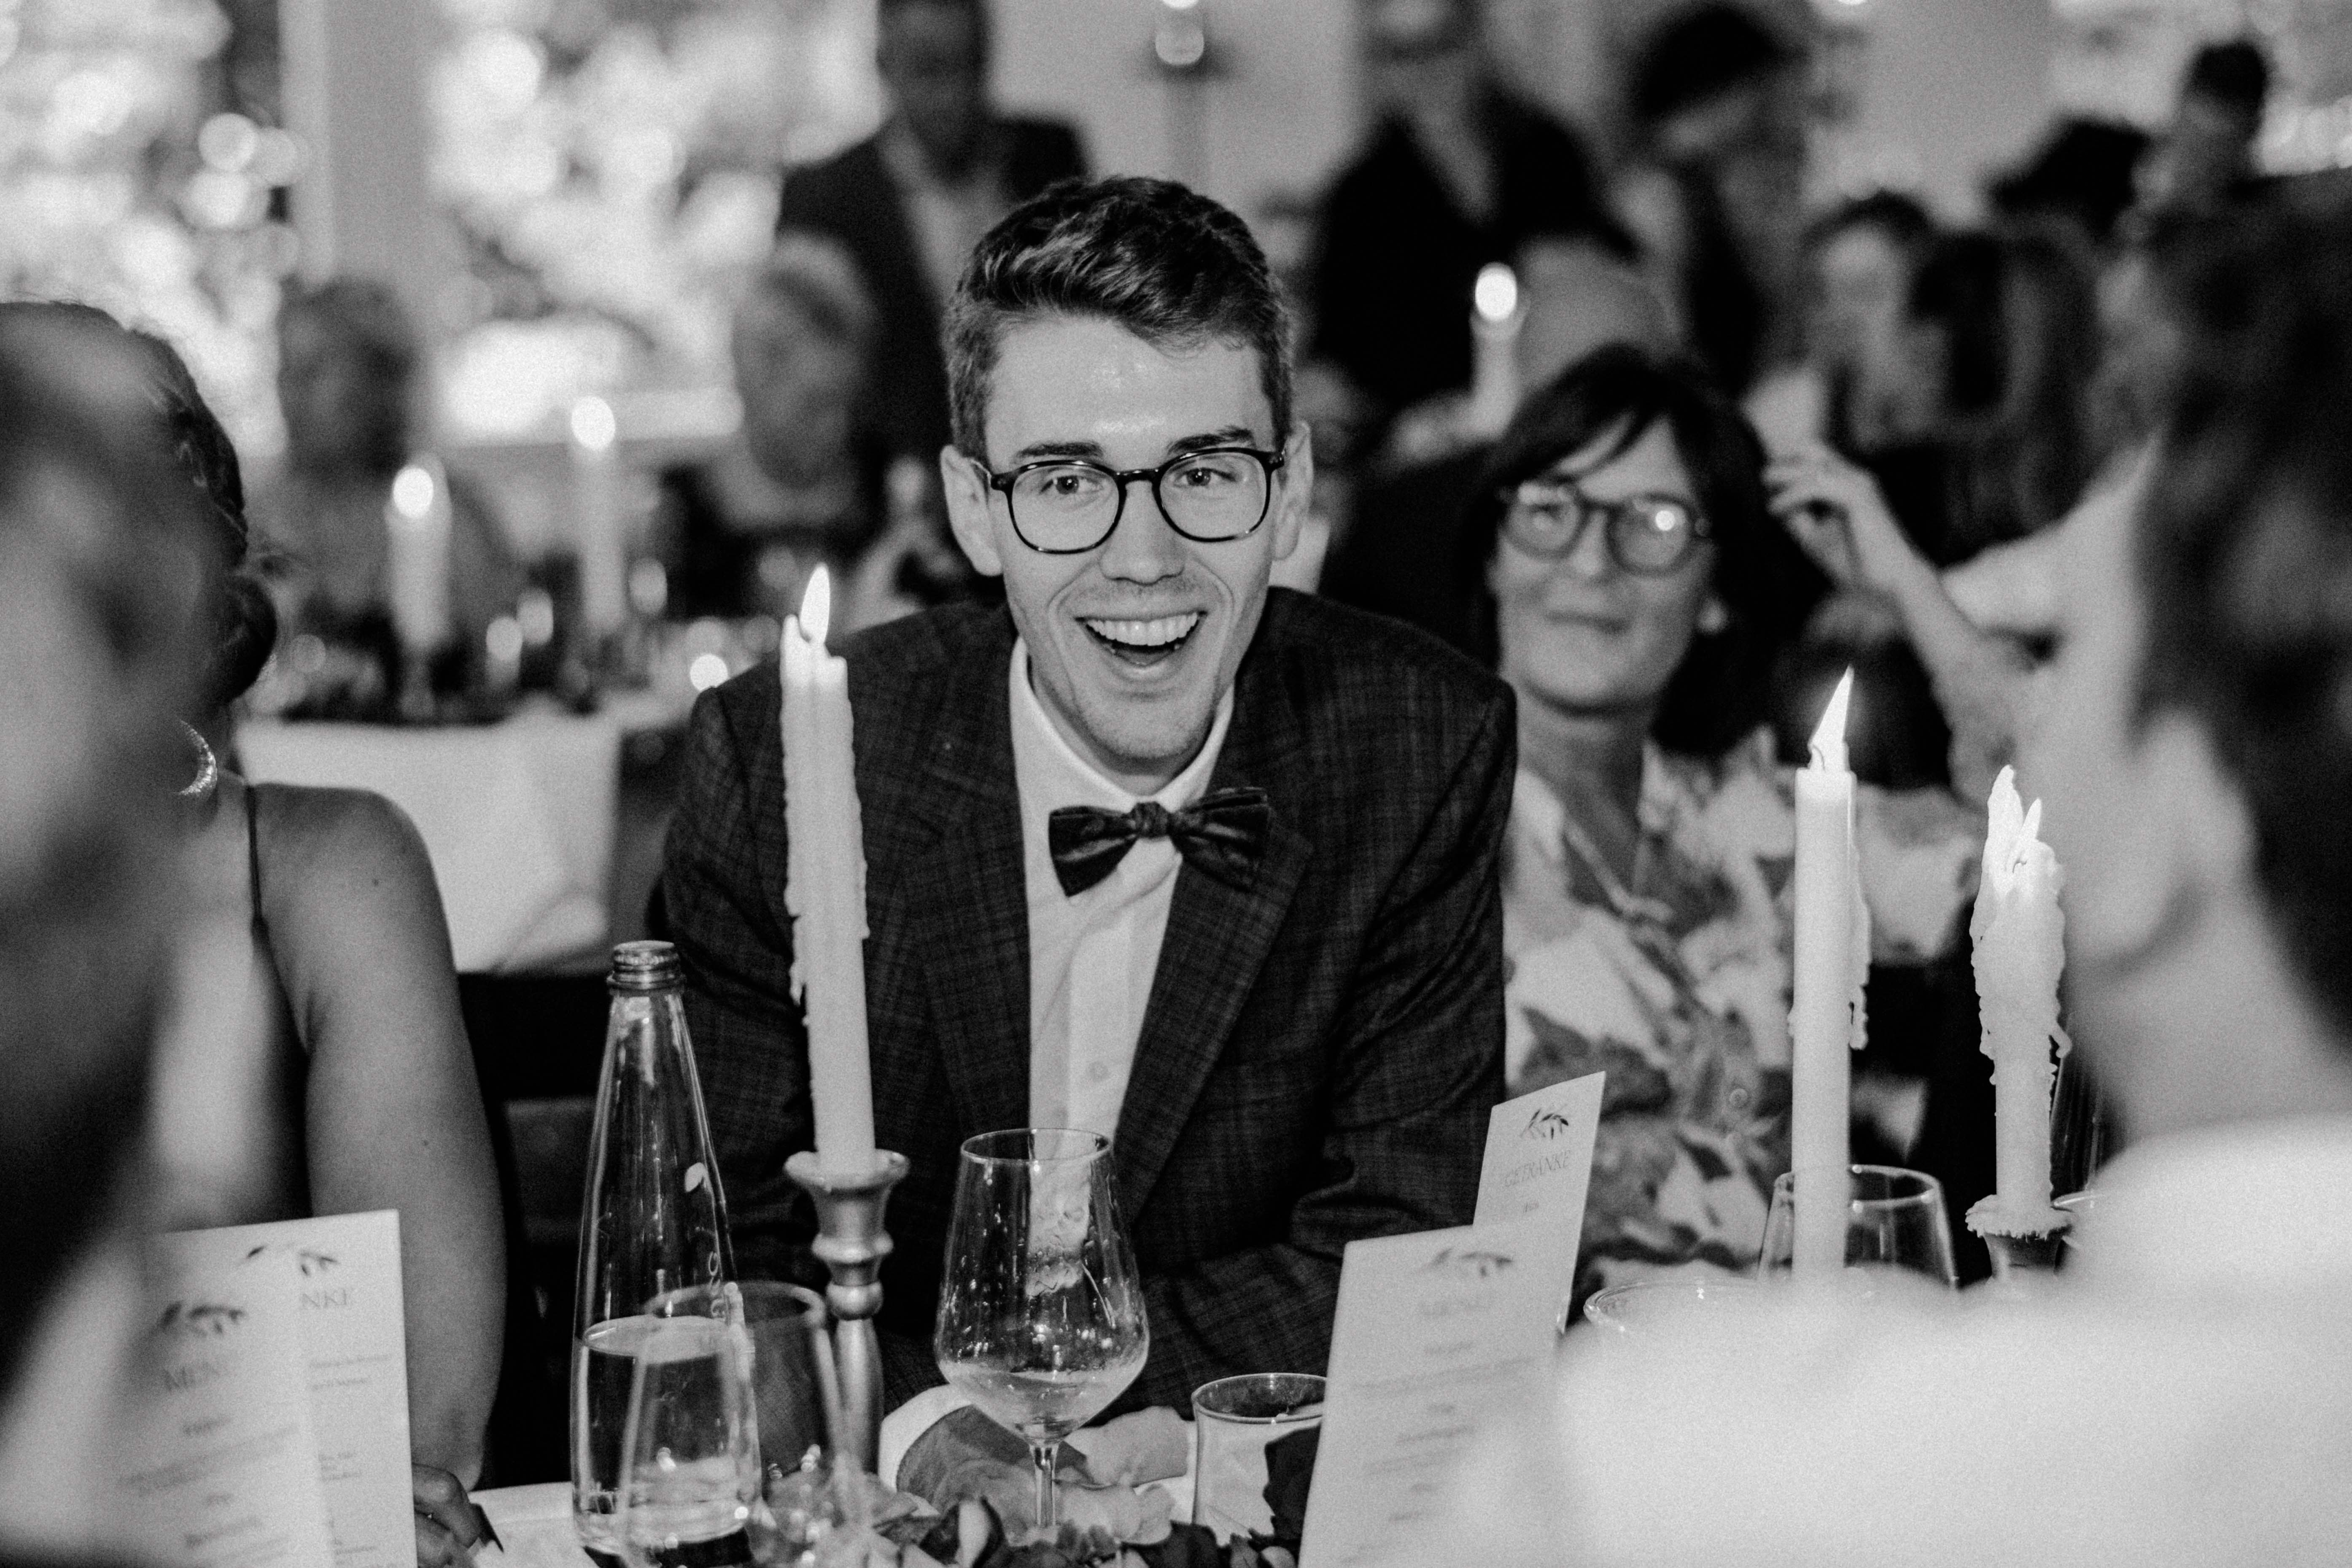 laughing guest sonja poehlmann photography wedding muenchen bayern